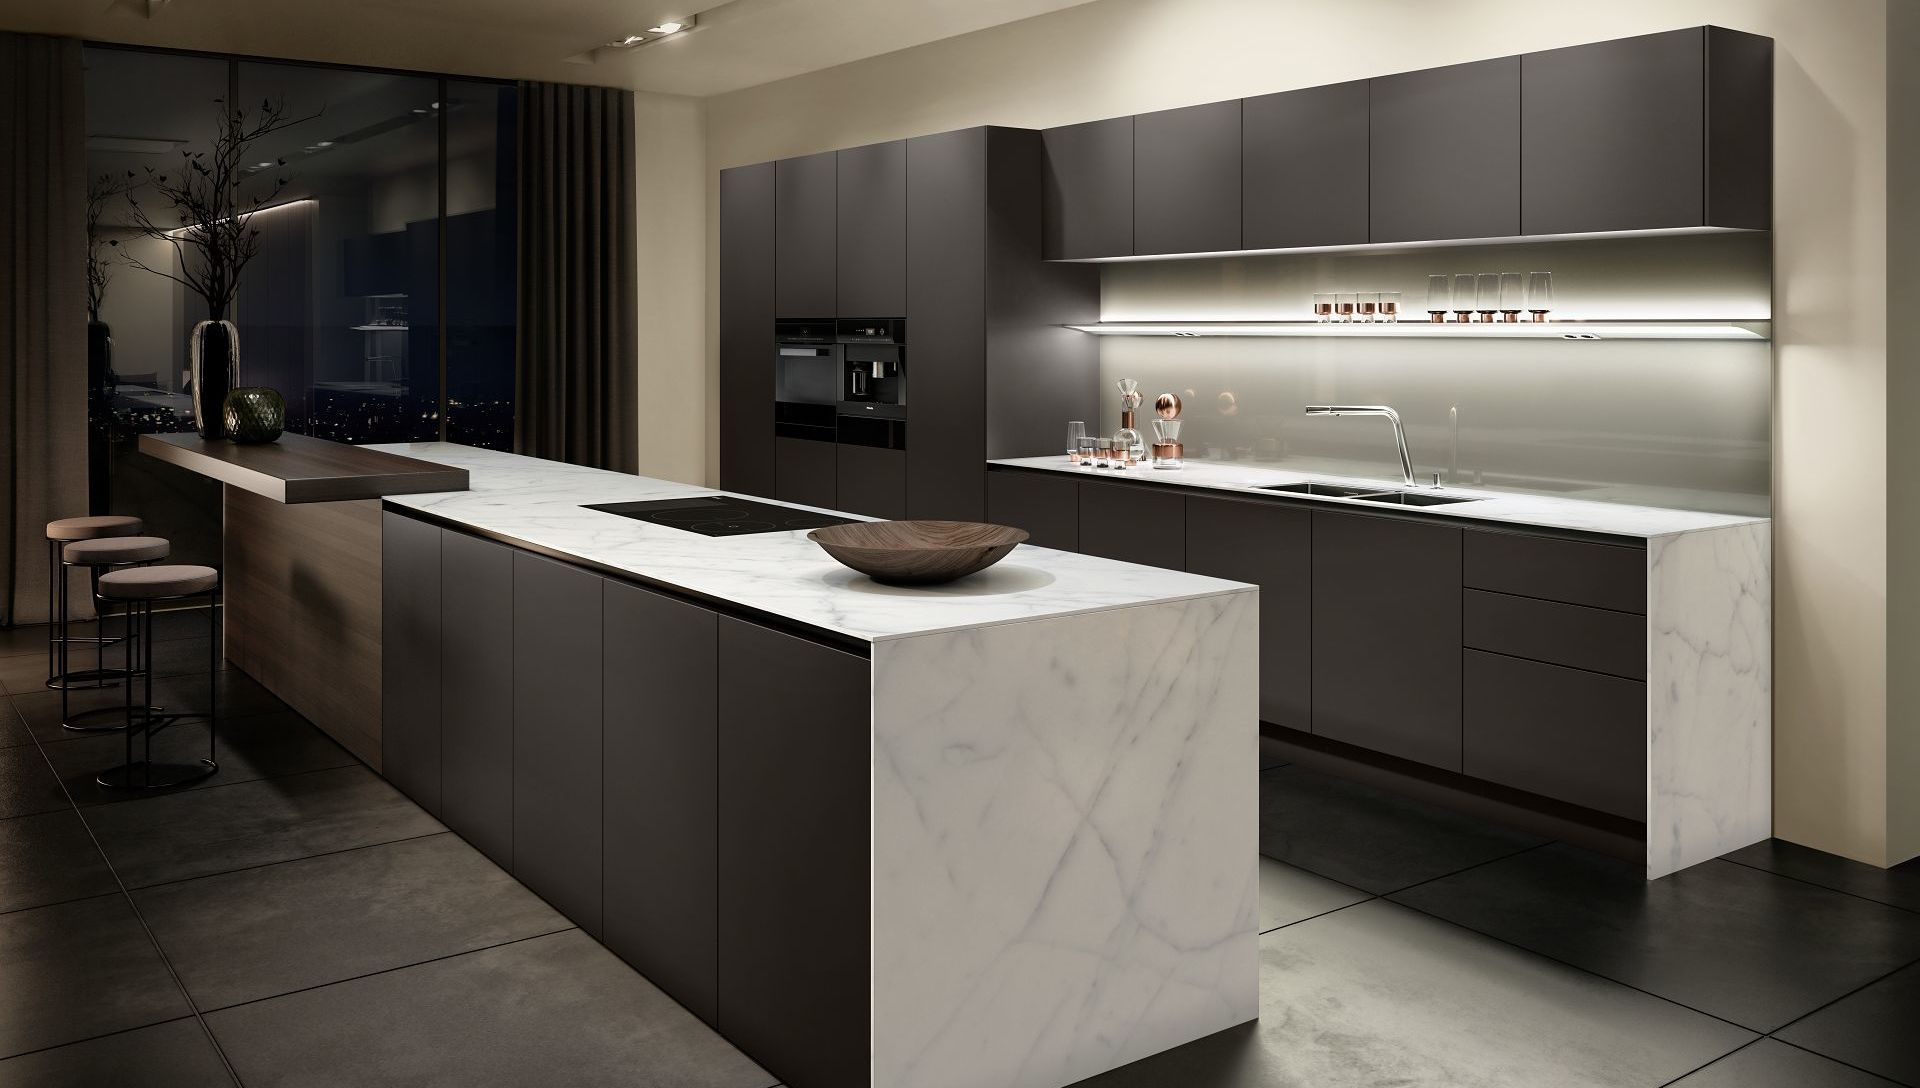 Handleless kitchens | Have all your questions answered on master bath design, room design, den design, apartment design, hall design, modern design, garage design, office design, basement design, staircase design, bedroom design, tile design, interior design, closet design, fireplace design, shower design, pantry design, bathroom design, backyard design, exterior design,